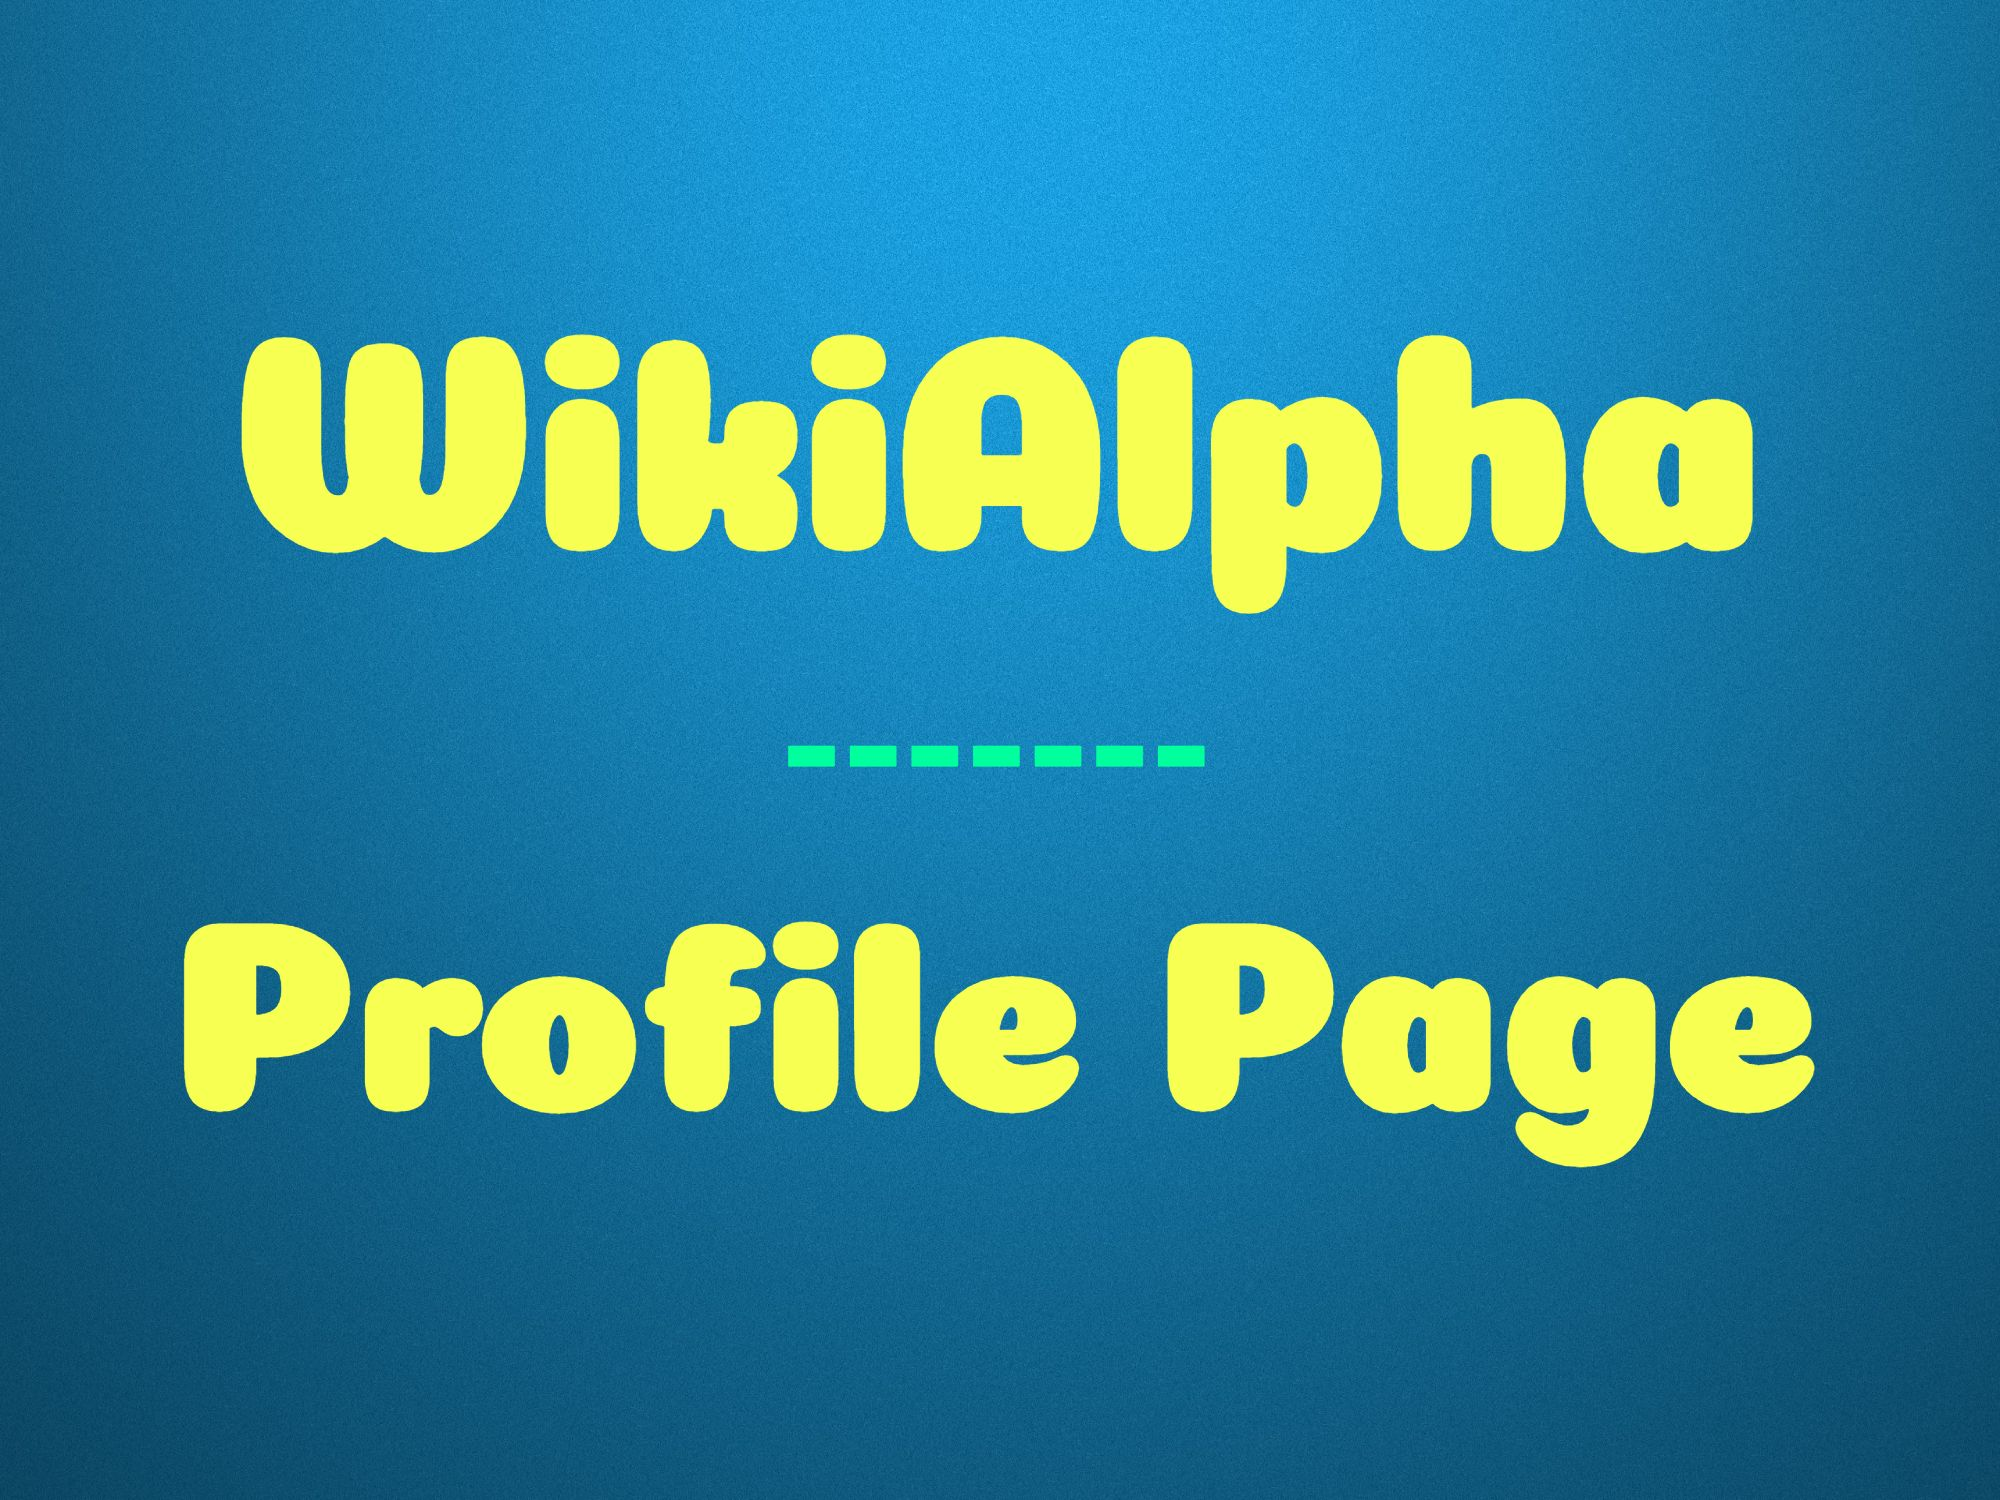 Create an approved WikiAlpha profile page